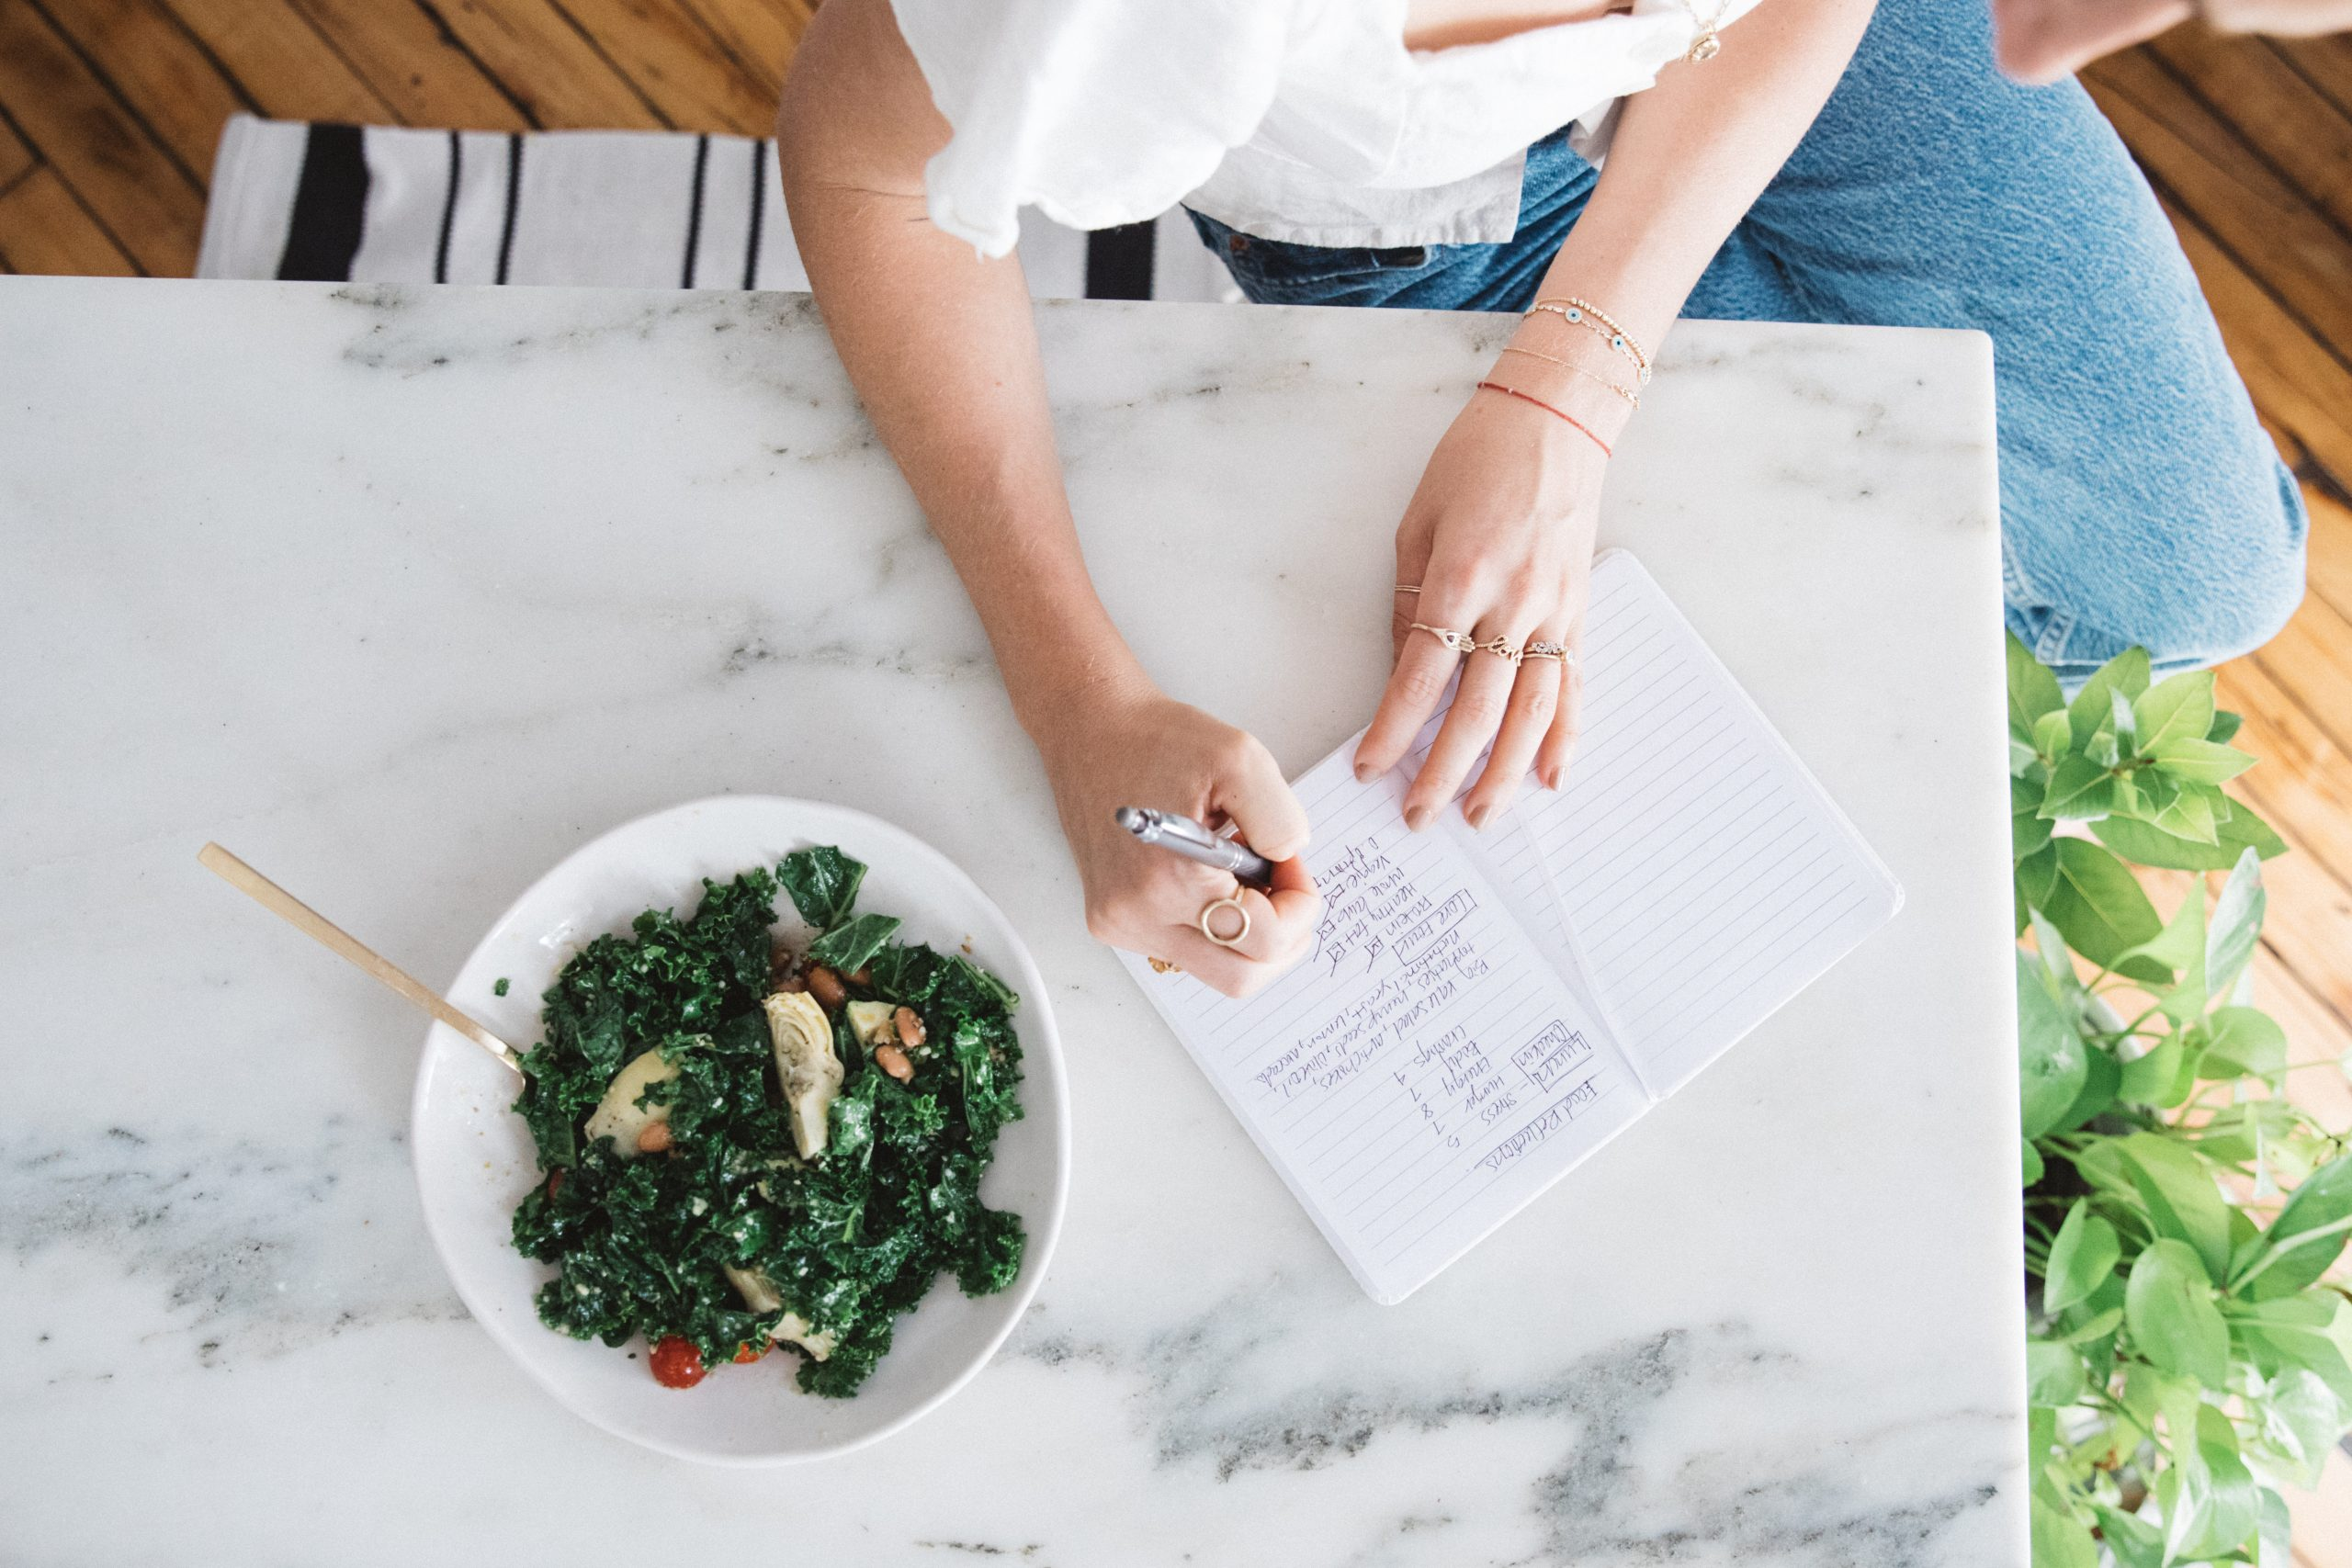 How You Can Stop Overeating and Be More Mindful at Meals